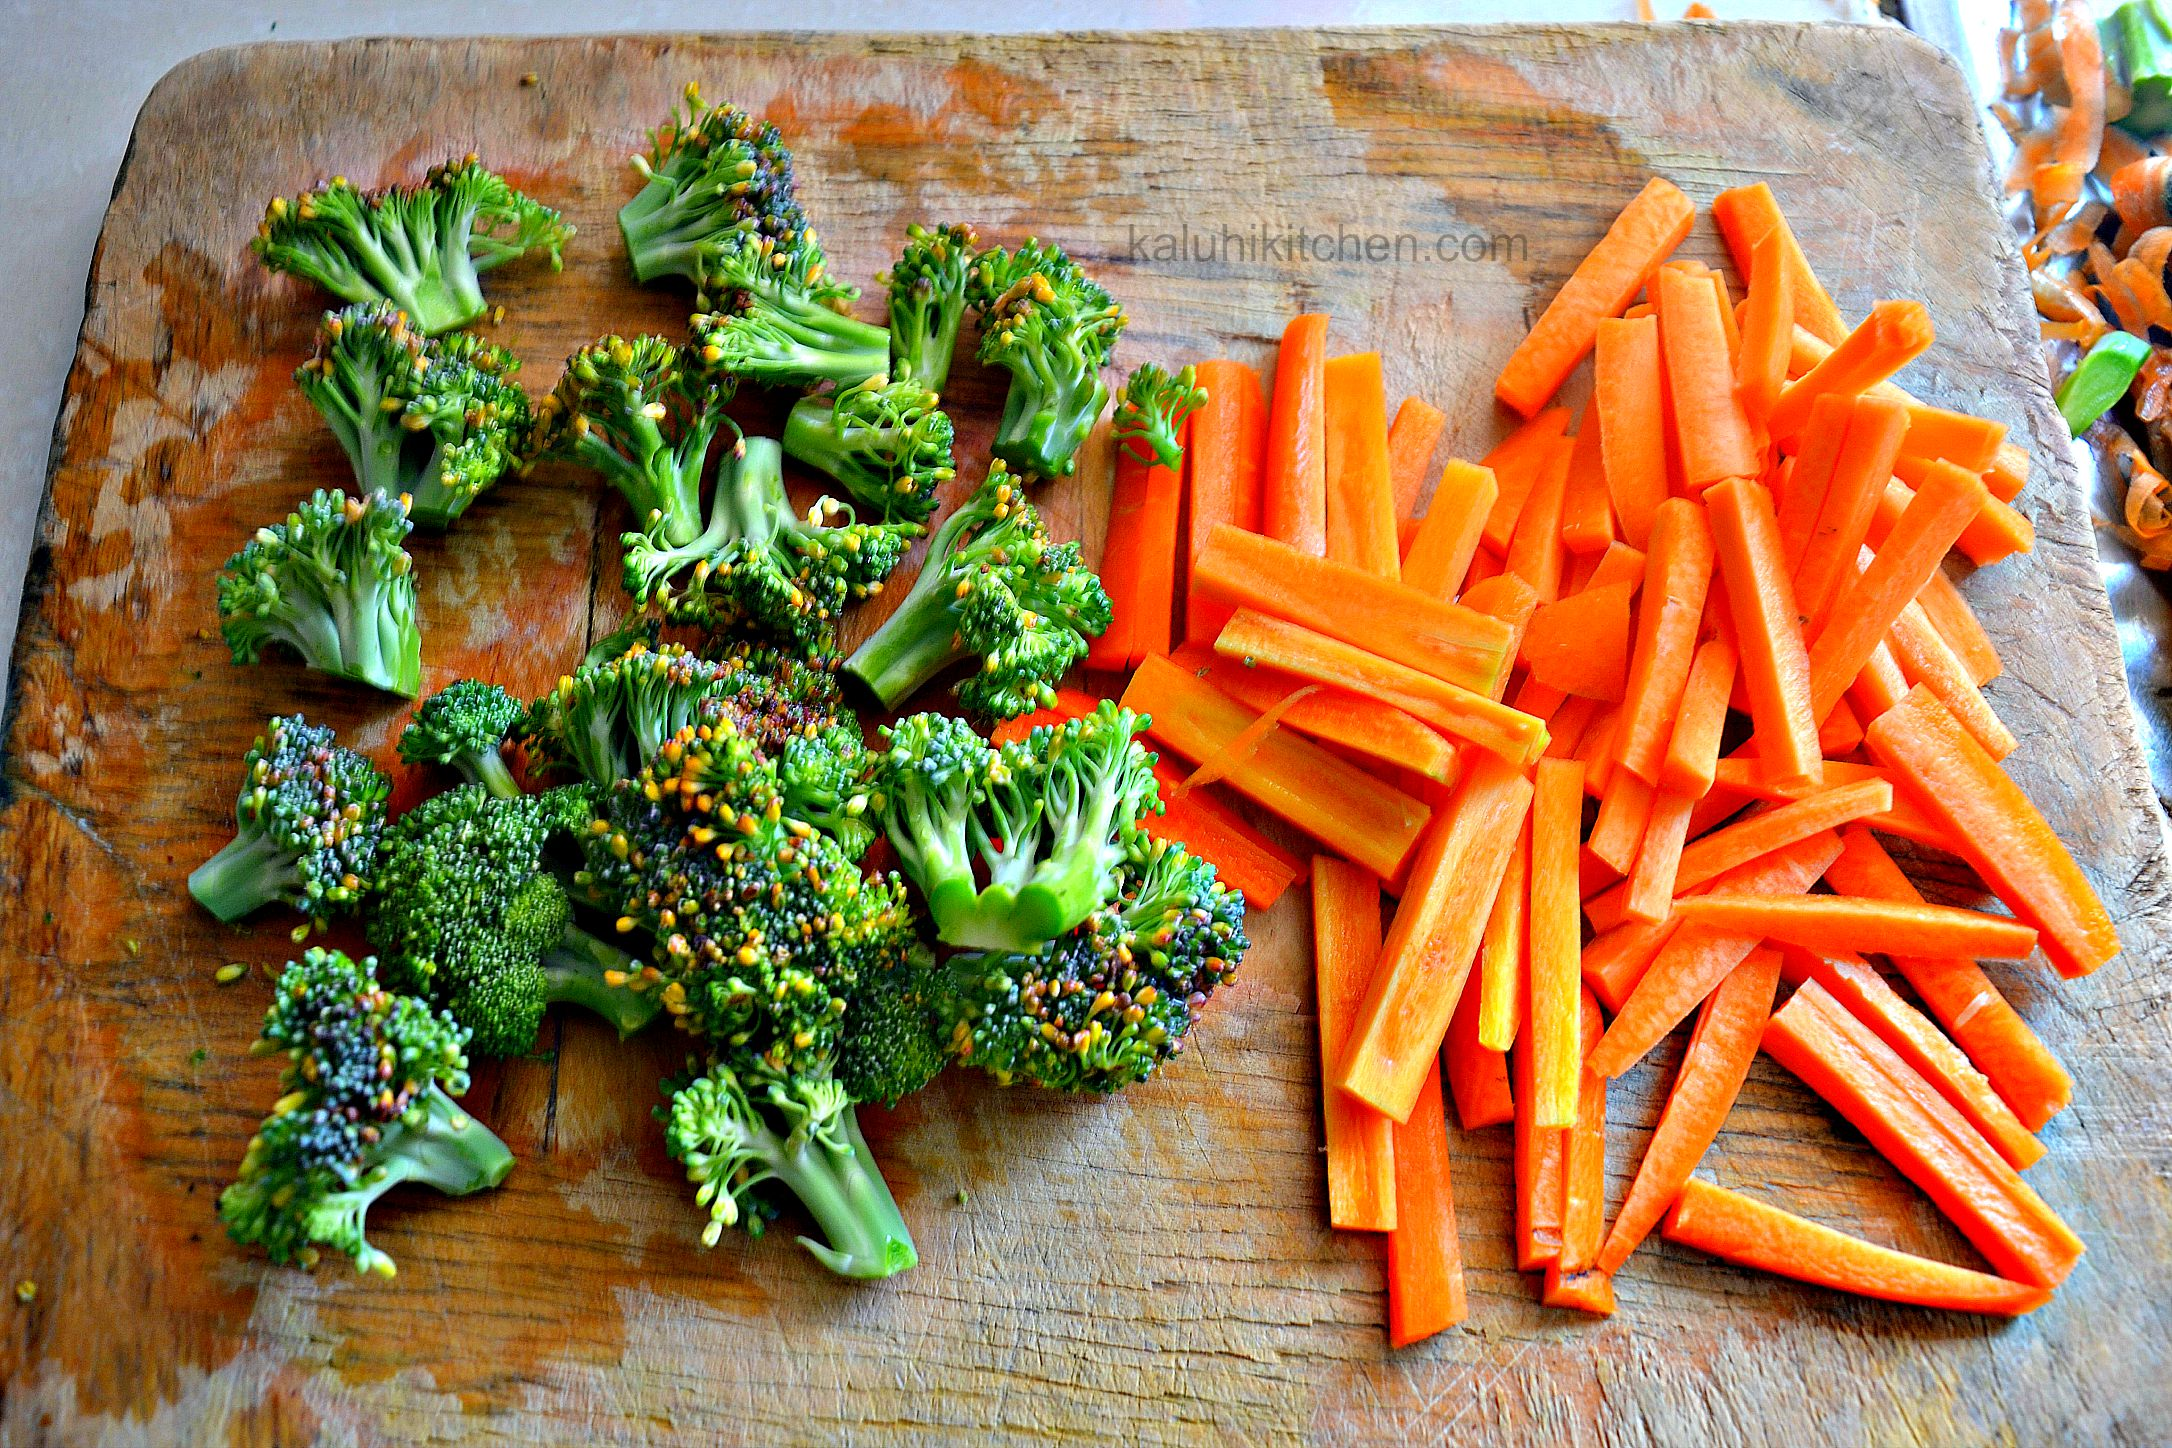 preparing fresh carrots and broccoli for steaming_the smaller you cut them up, the faster they will cook_kaluhiskitchen.com